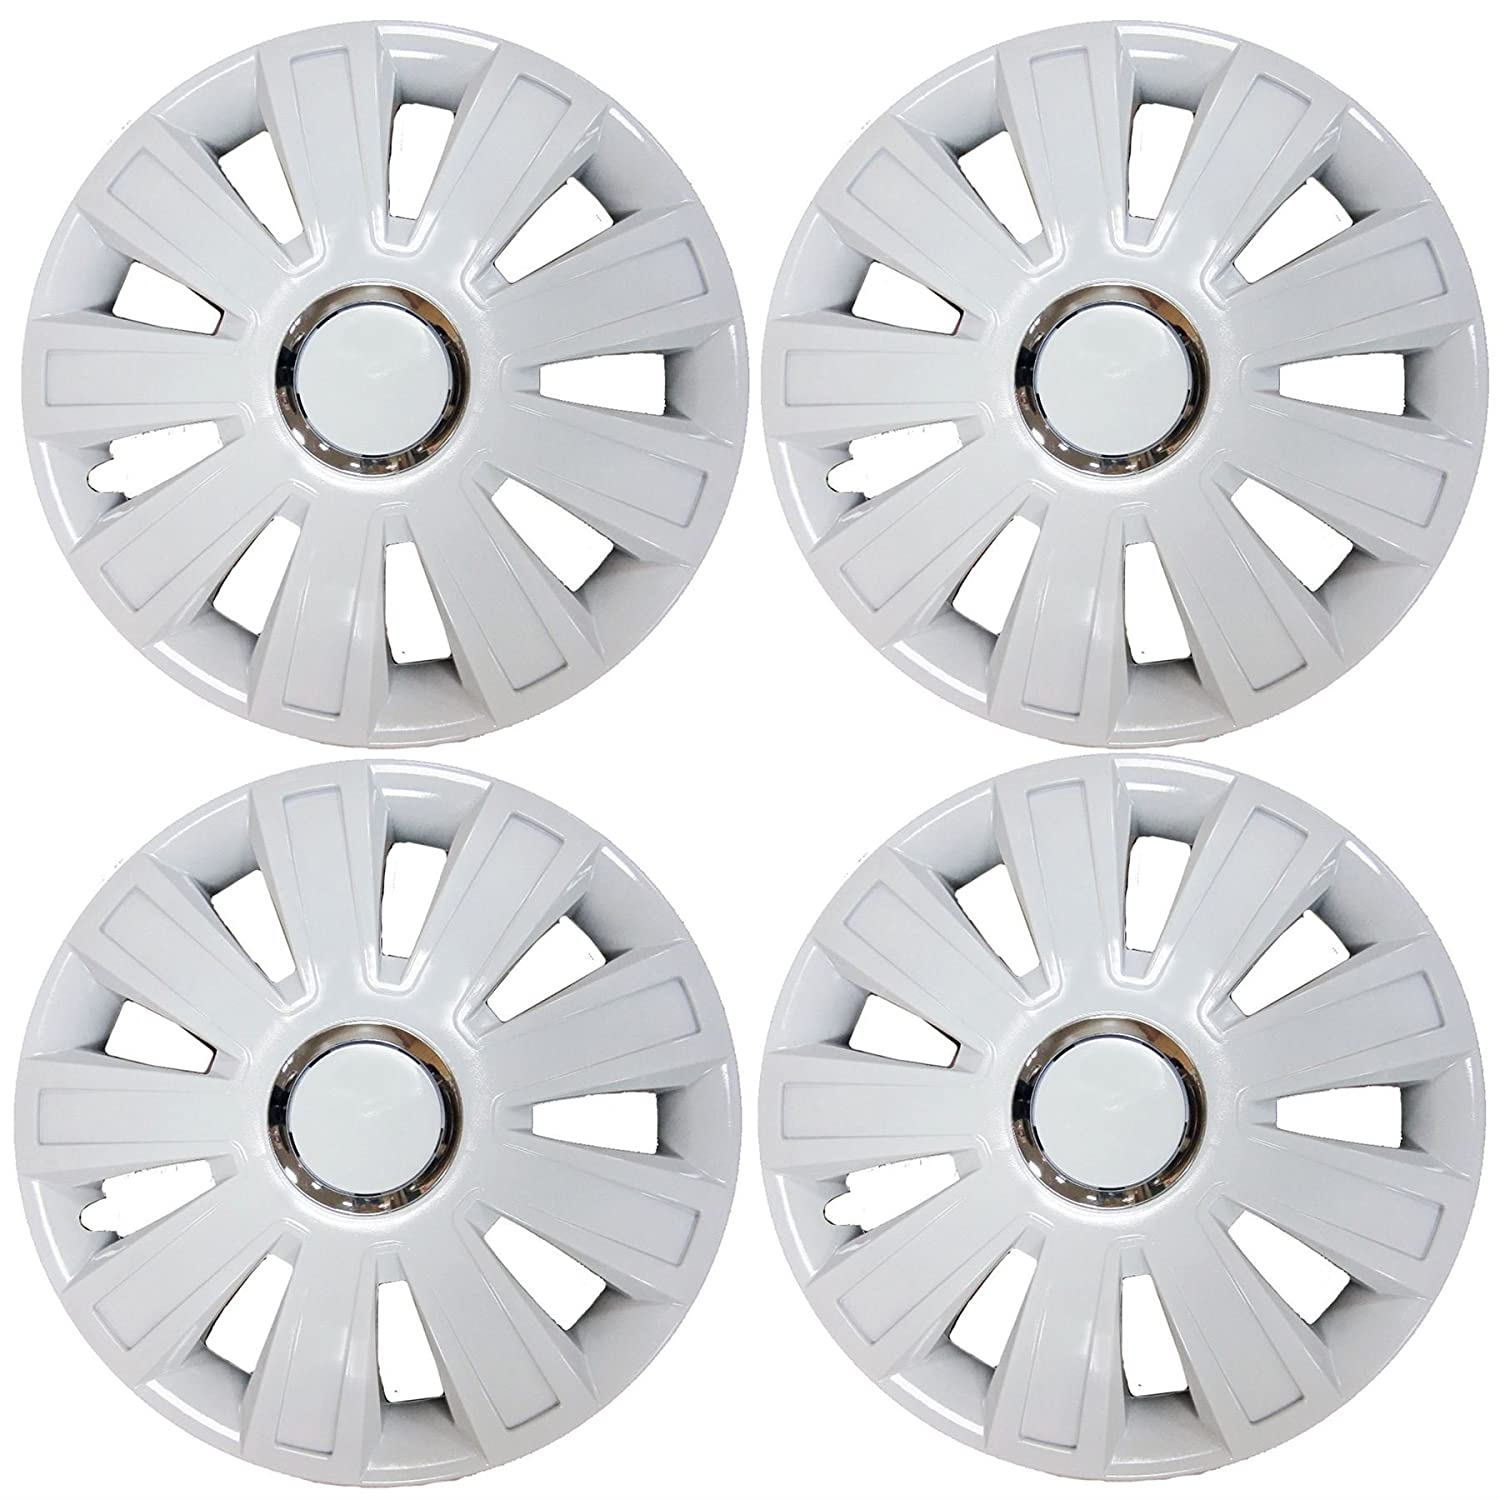 UKB4C Set of 4 White Wheel Trims/Hub Caps 13' Covers fits Fiat Panda